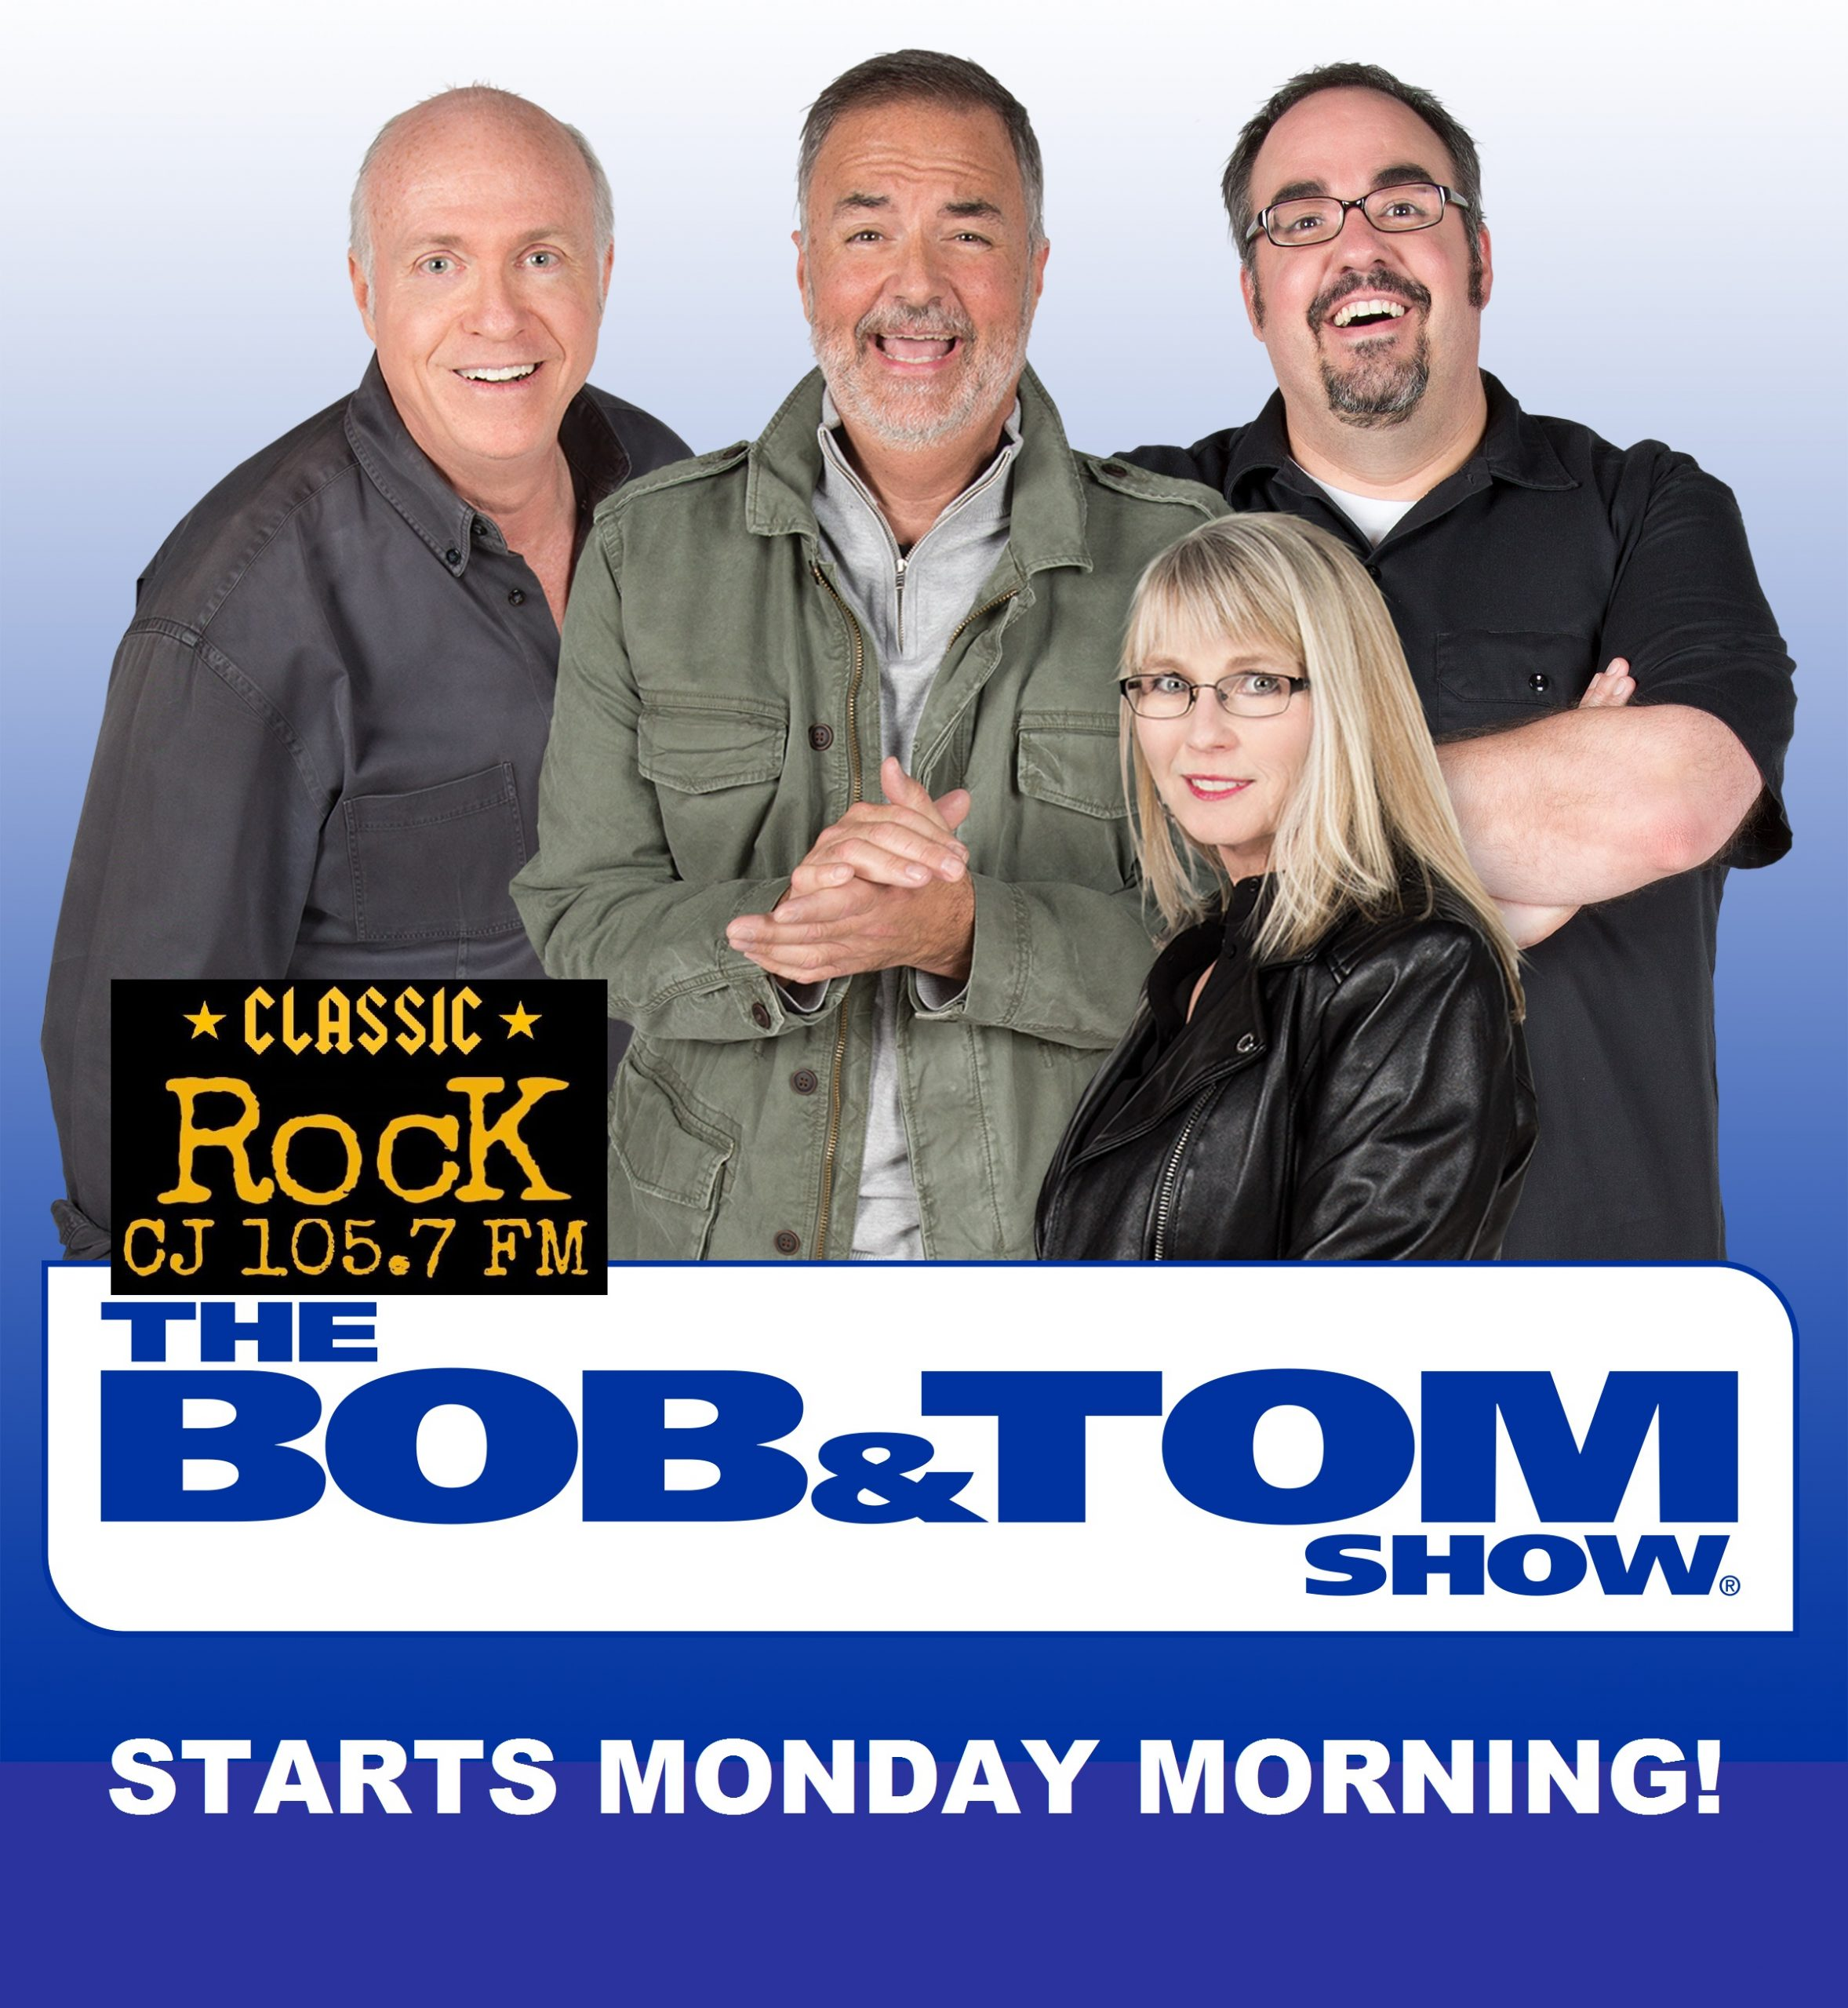 Cromwell Radio Group's CJ 105.7 Brings Bob & Tom!